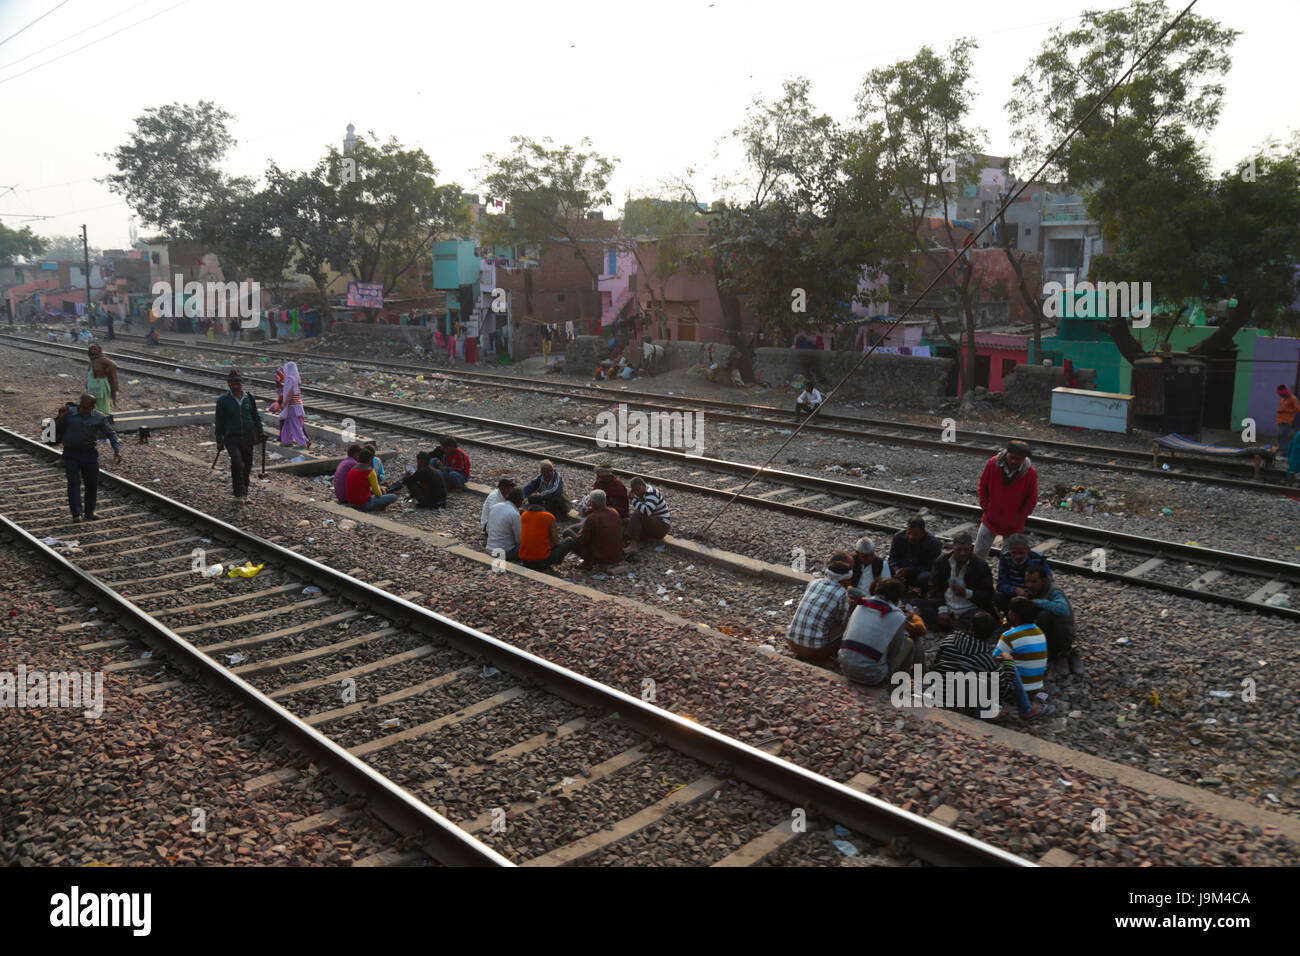 View on railway with people standing on the track from moving train. India Stock Photo